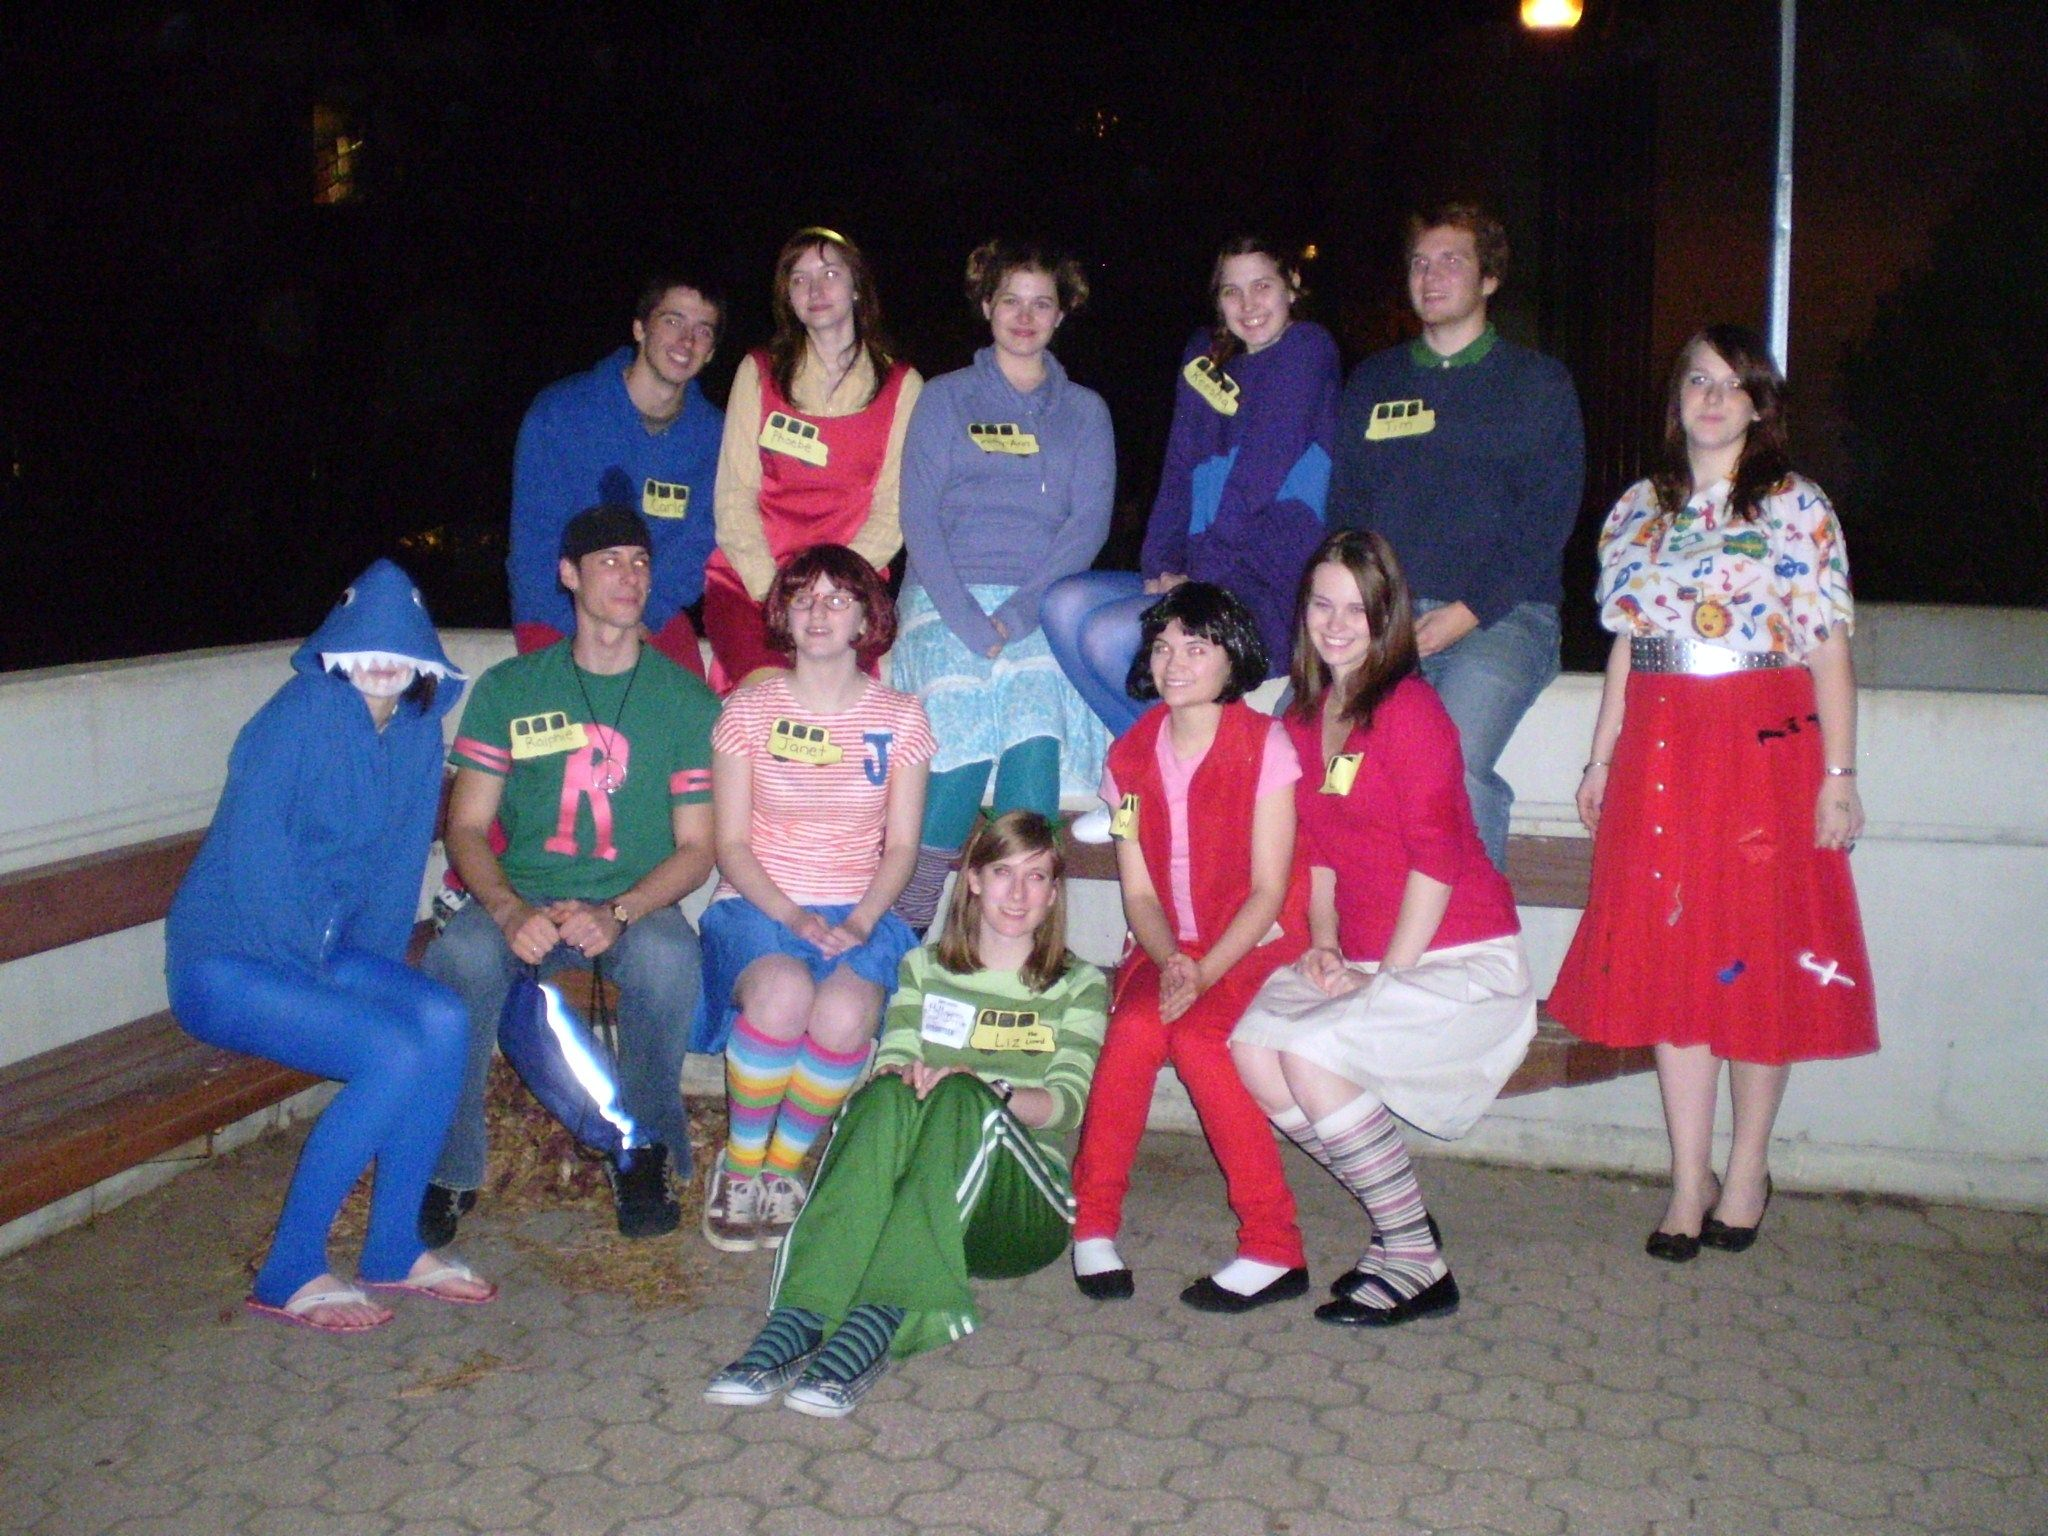 attend the bums halloween social with sweet costumes ex the magic school bus great group costume idea for university students - Halloween Social Ideas